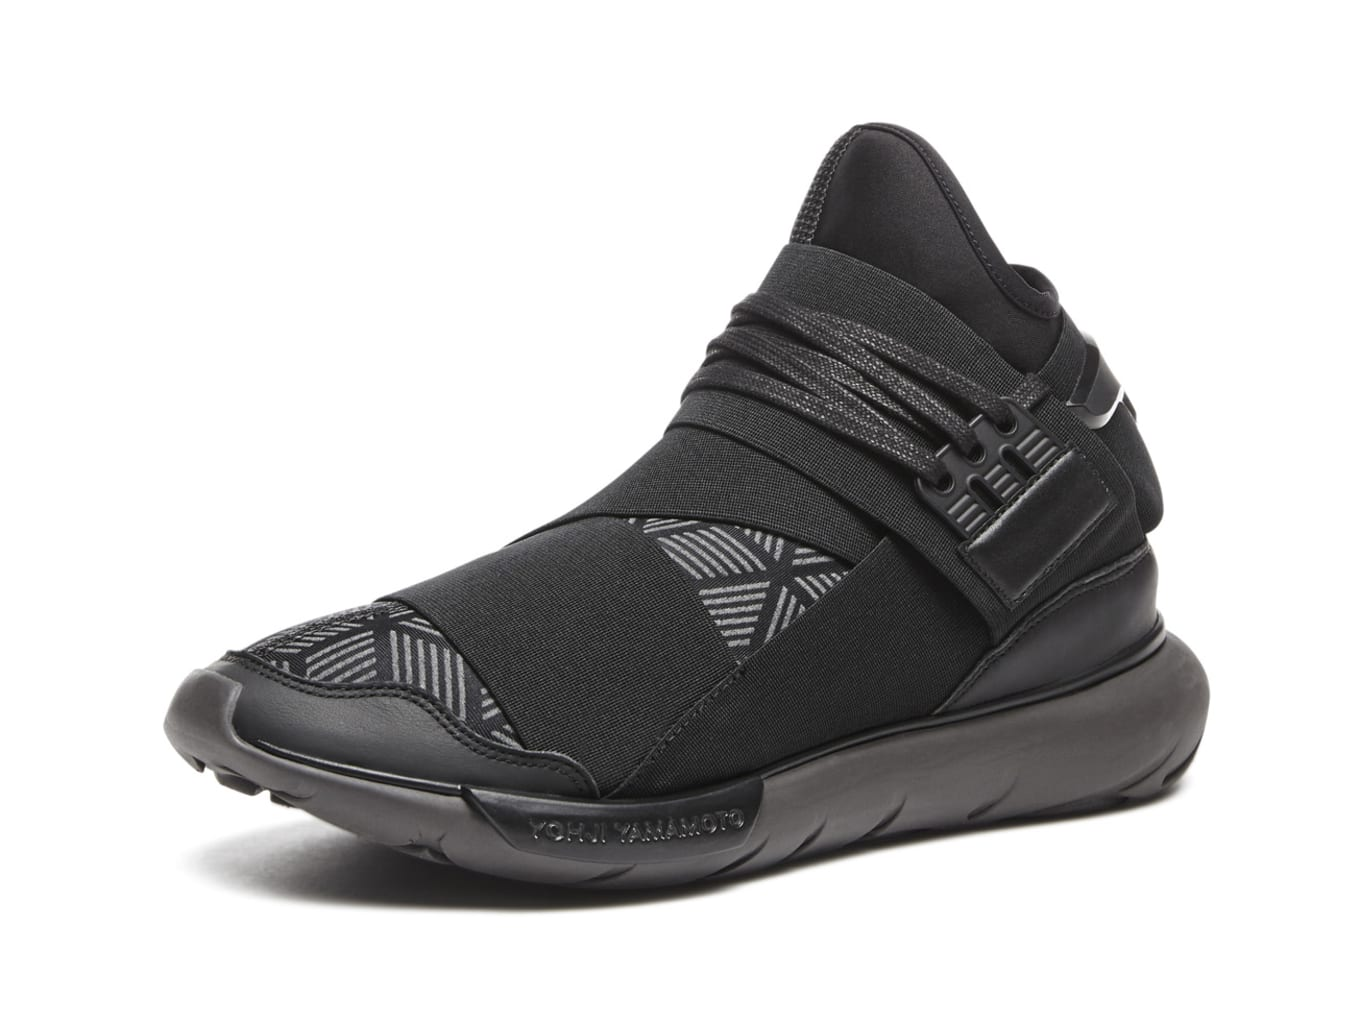 933f1d570 Adidas Y-3 Launches Futuristic Sneaker Collection. Pureboots